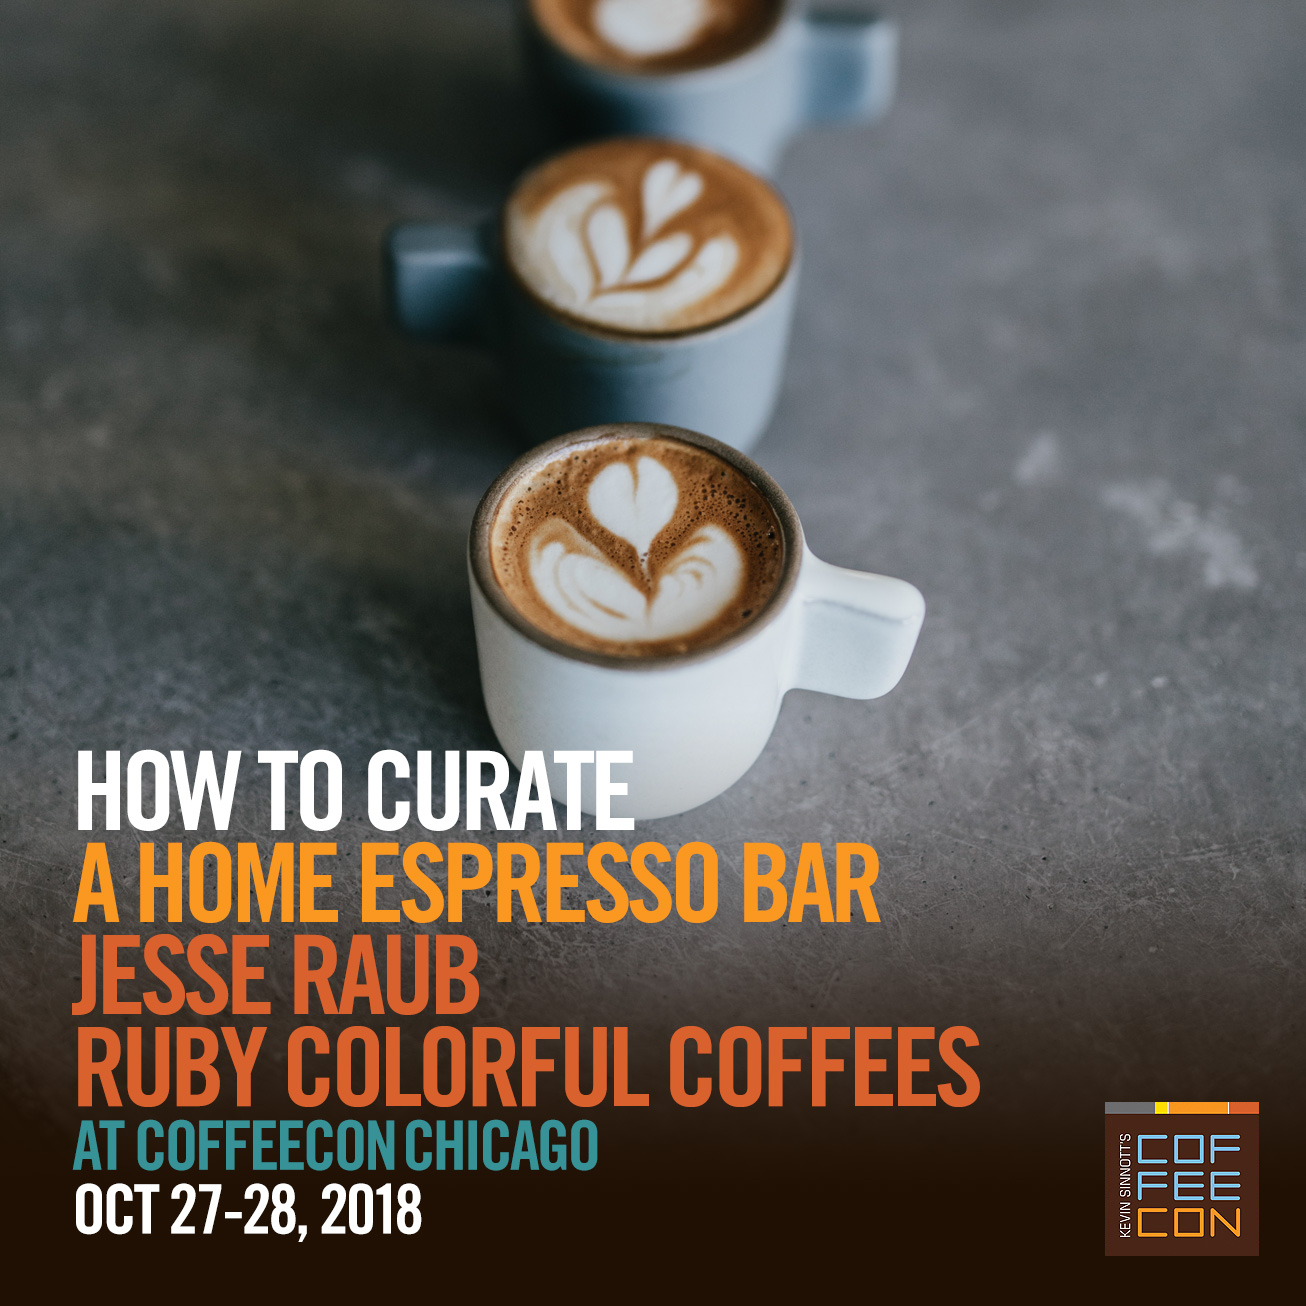 How to Curate a Home Espresso Bar with Ruby Coffees Coffee at CoffeeConChicago 2018